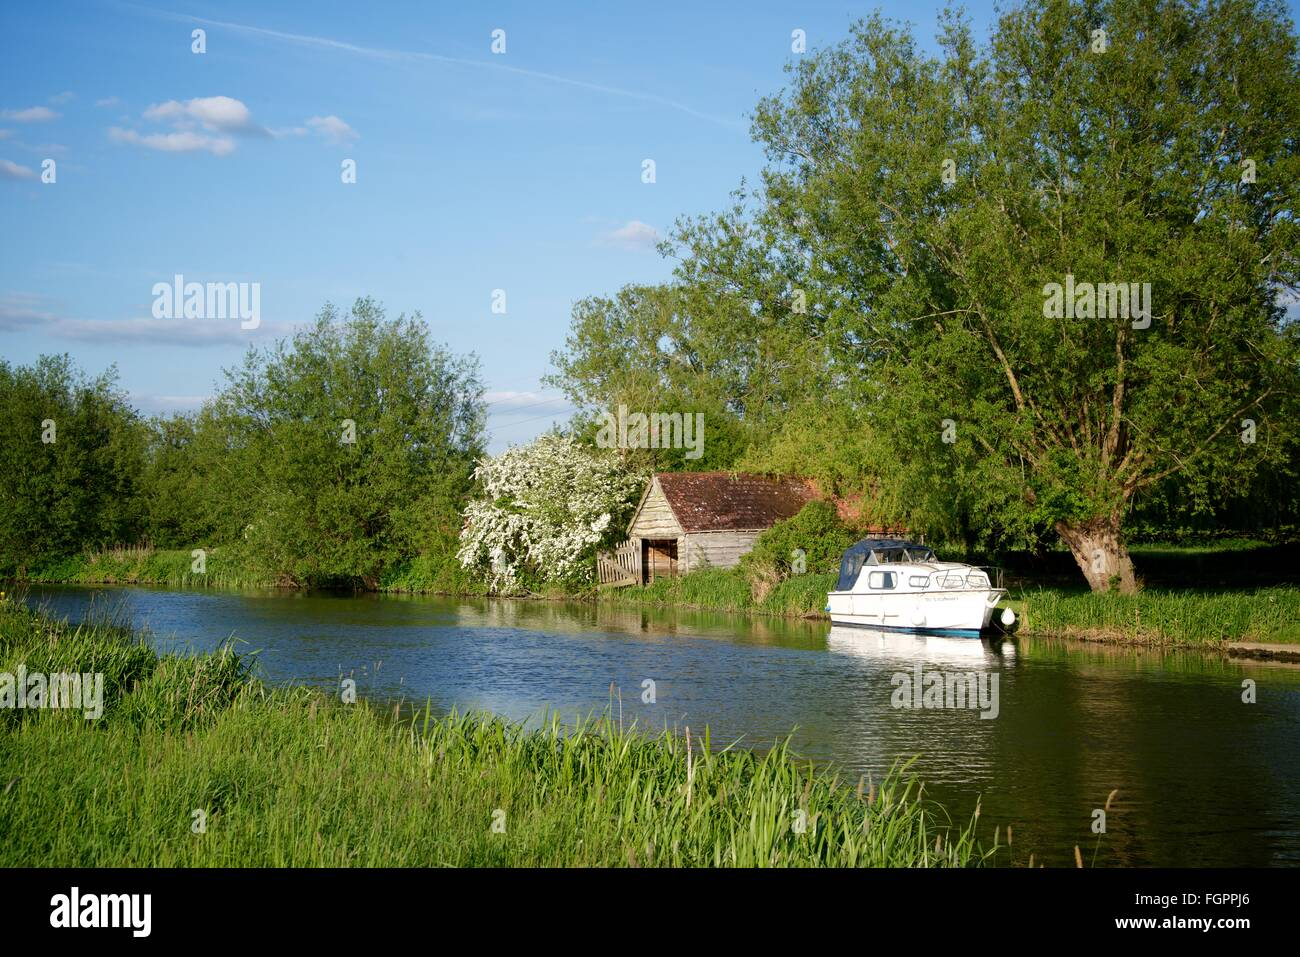 Cycling along the river Thames near Appleton in Oxfordshire, England - Stock Image